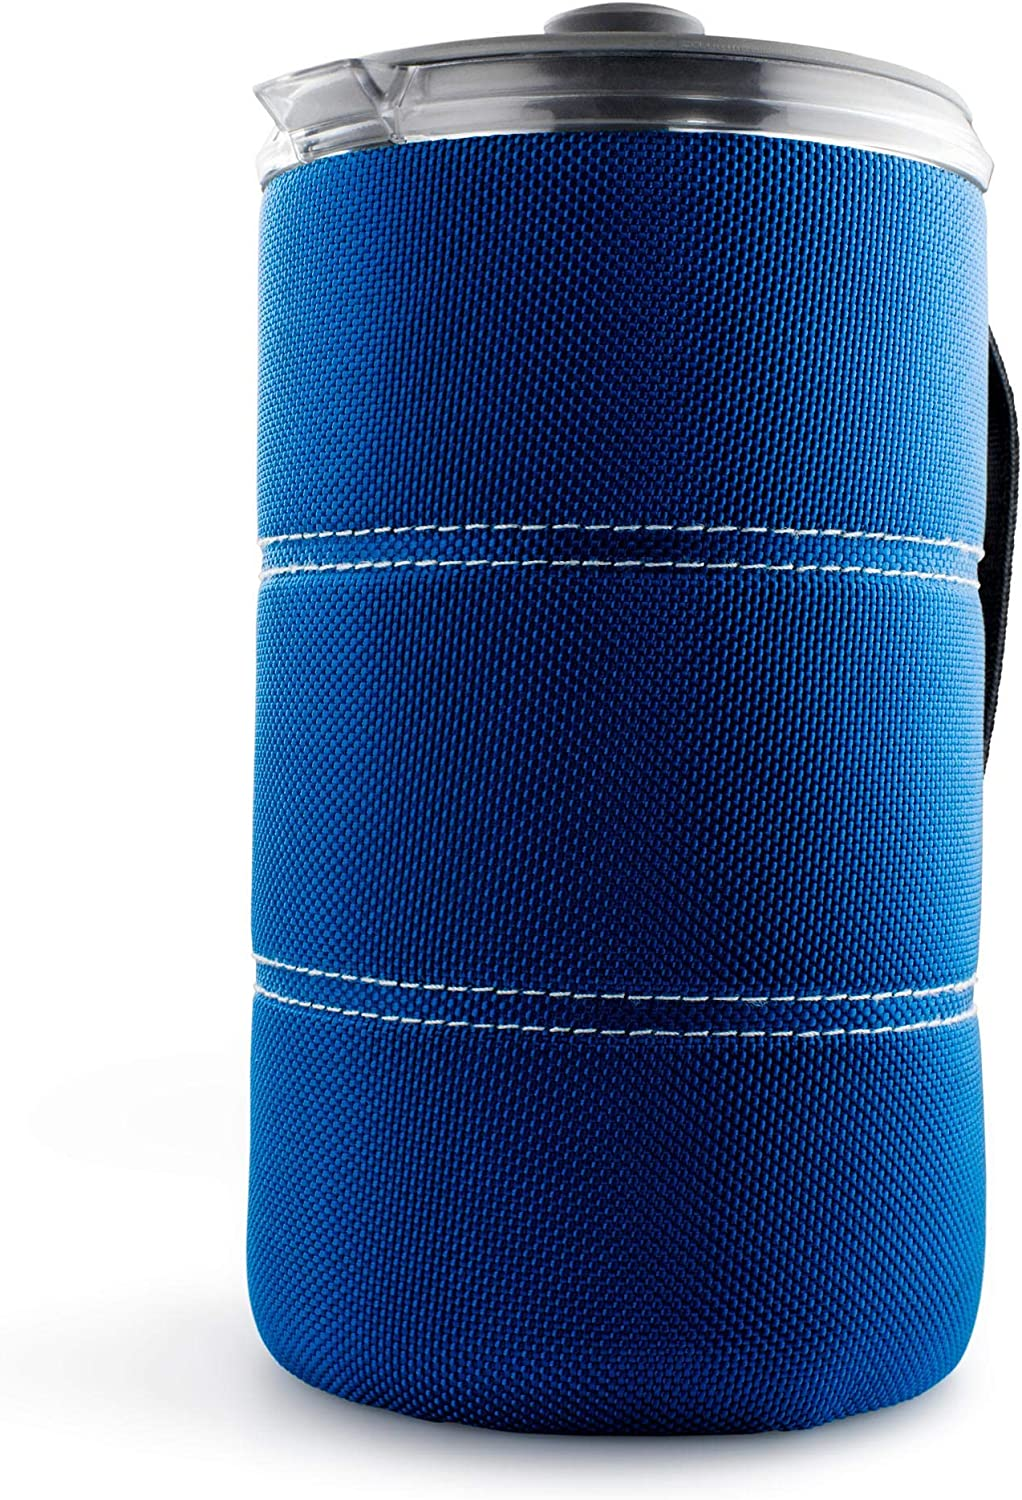 This is an image of a coffee press with blue insulation cover.